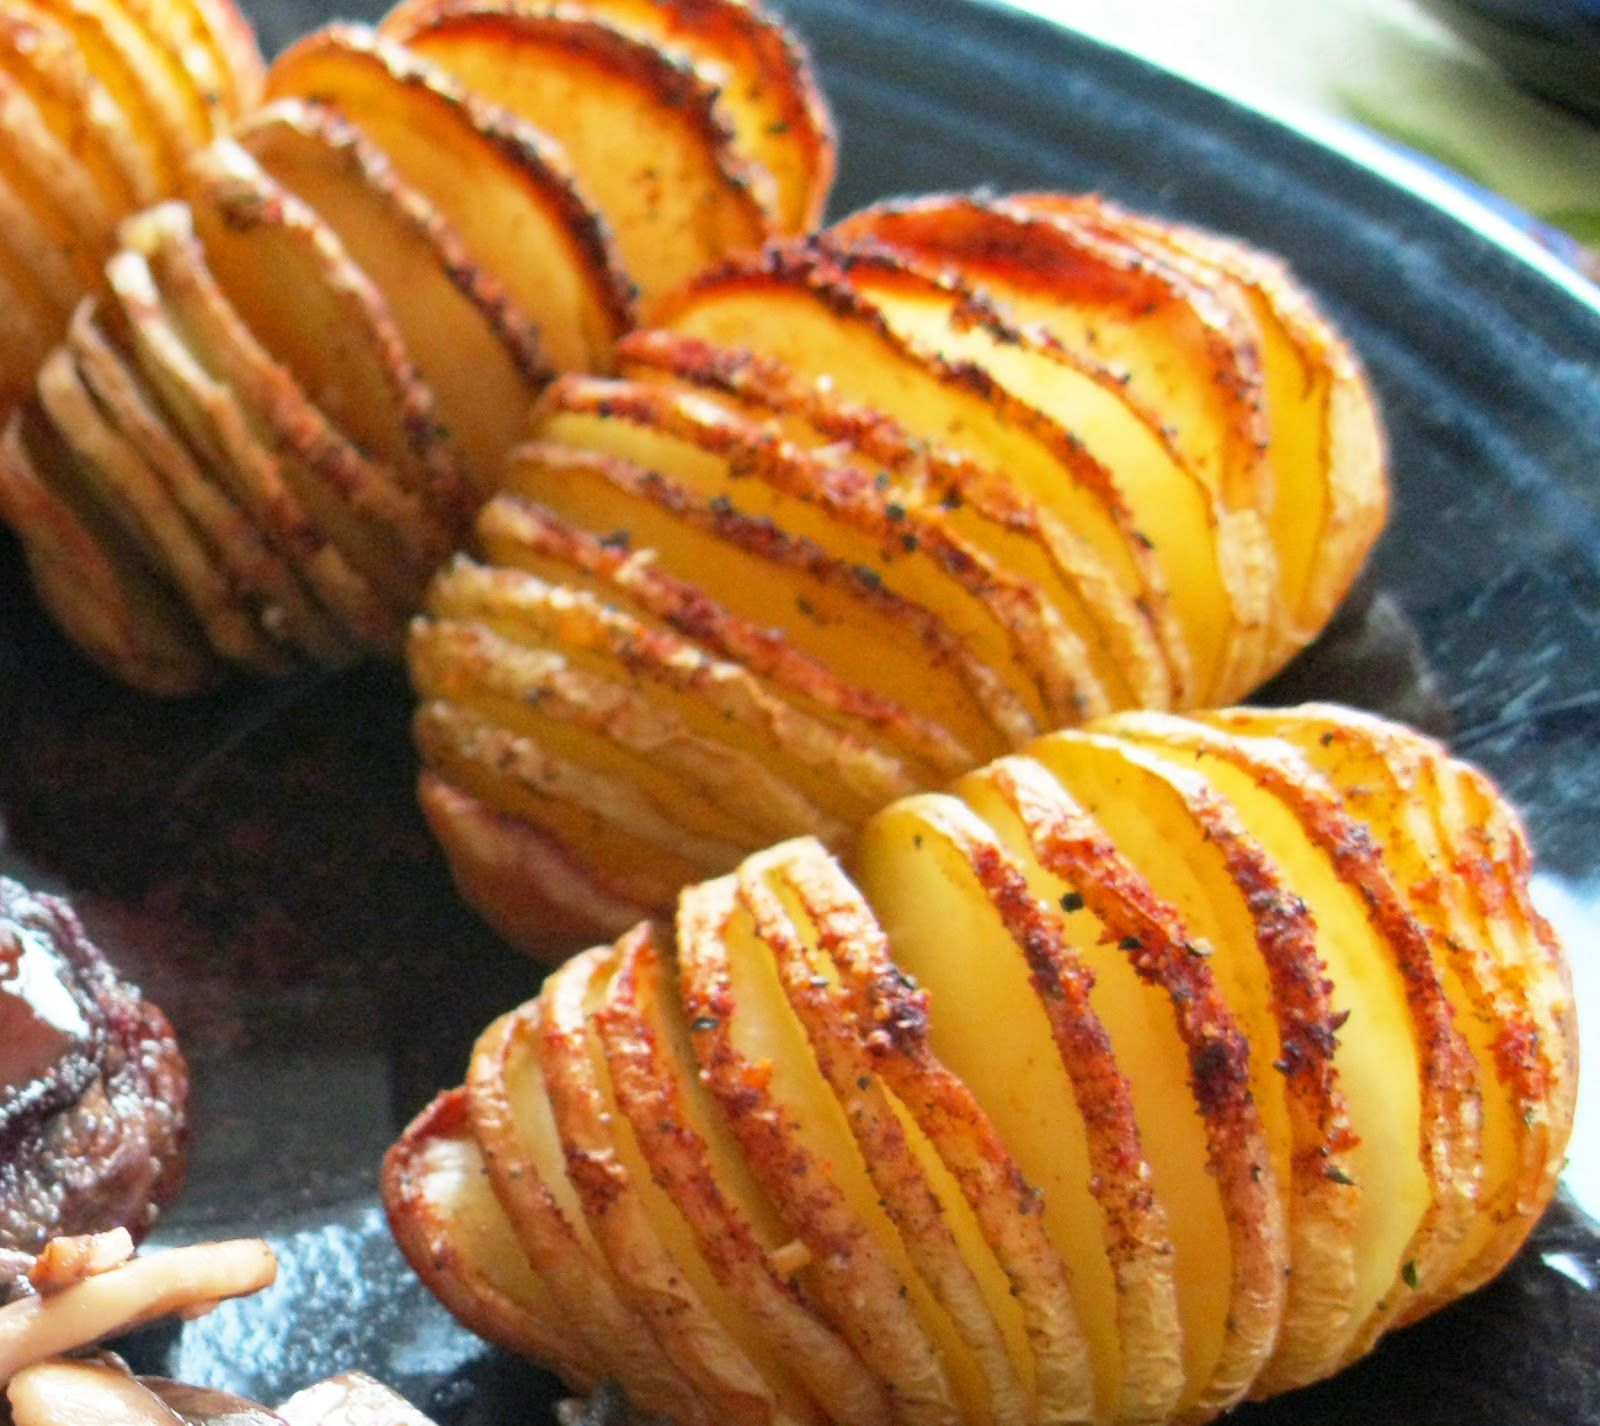 Healthy you sliced baked potatoes slice olive oil seasonings healthy you sliced baked potatoes made mine with olive oil sprinkled with paprika sea salt thyme and ground mustard put dried onions inbetween slices ccuart Image collections